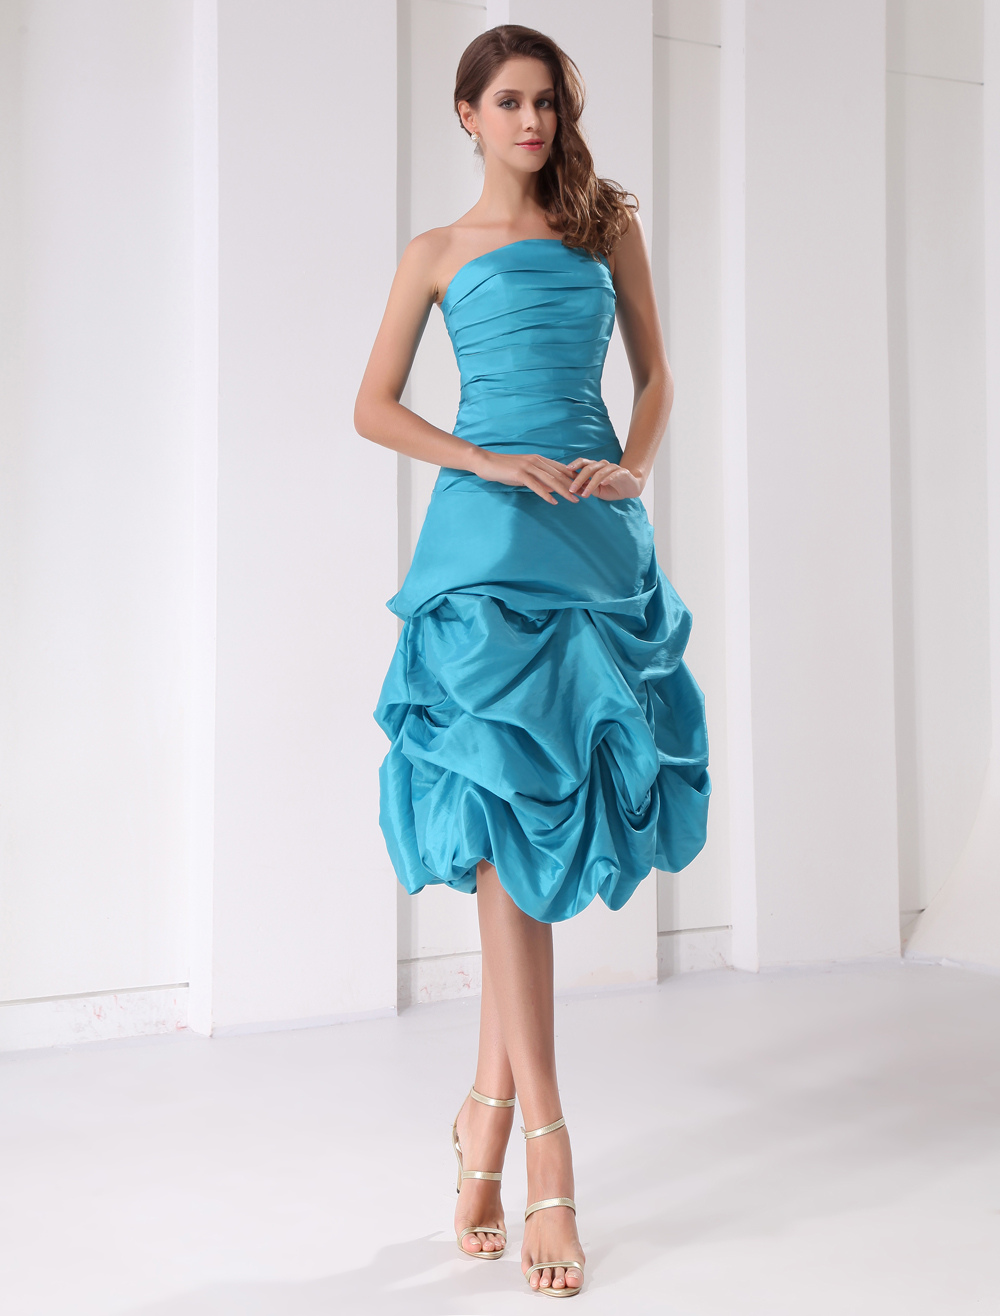 Short Prom Dress Aqua Strapless Ruched Ball Gown Knee Length Taffeta Party Dress